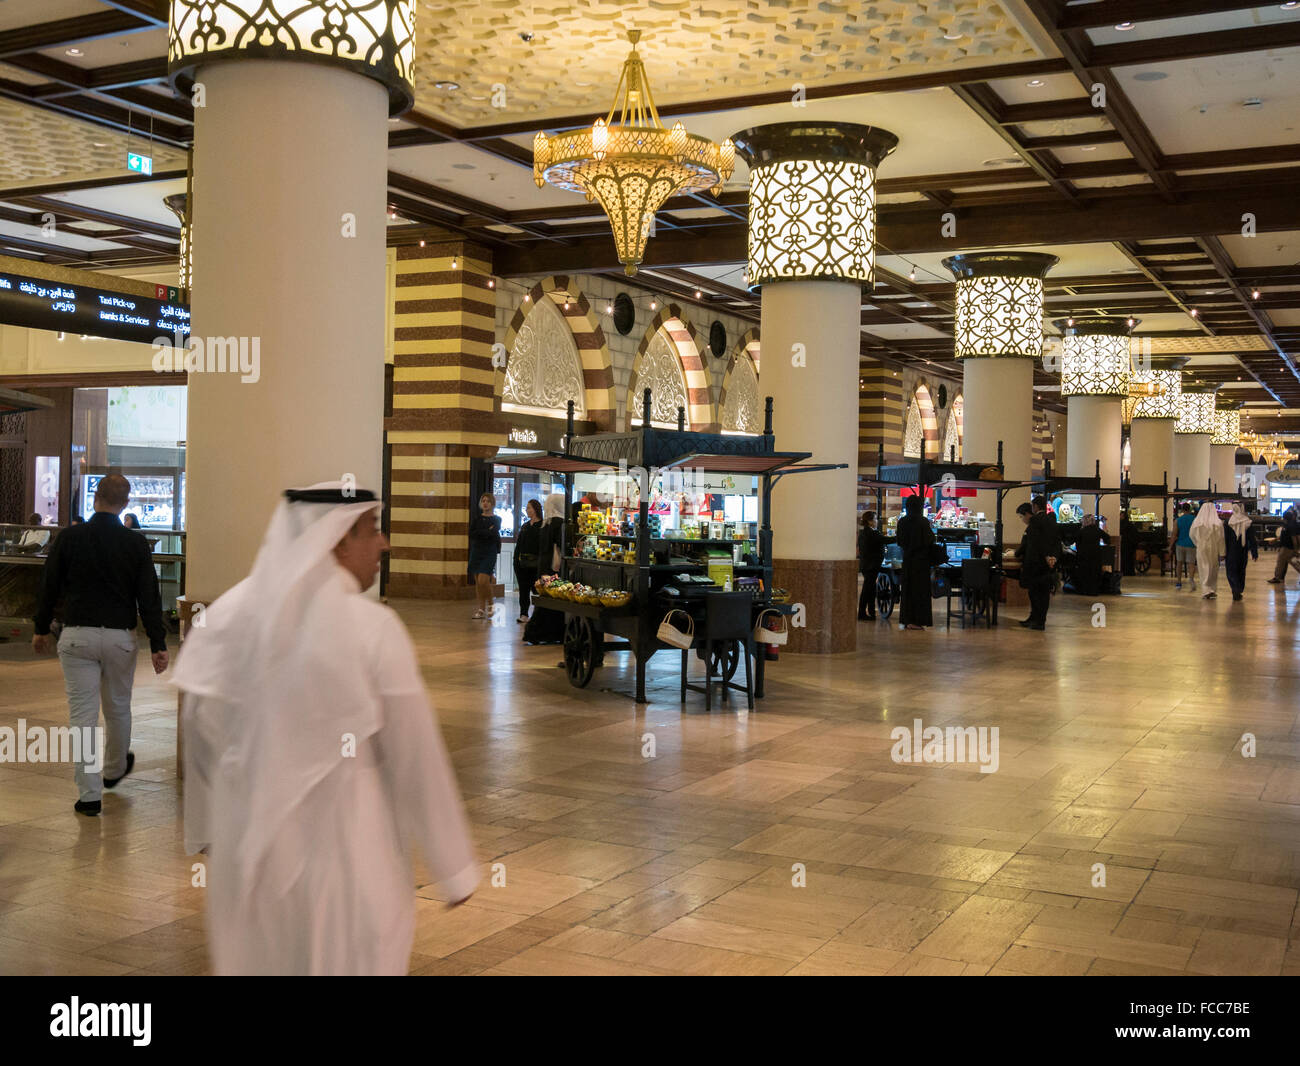 Tourists, immigrant families and local residents shopping in The Dubai Mall, the home of the Dubai shopping festival, - Stock Image